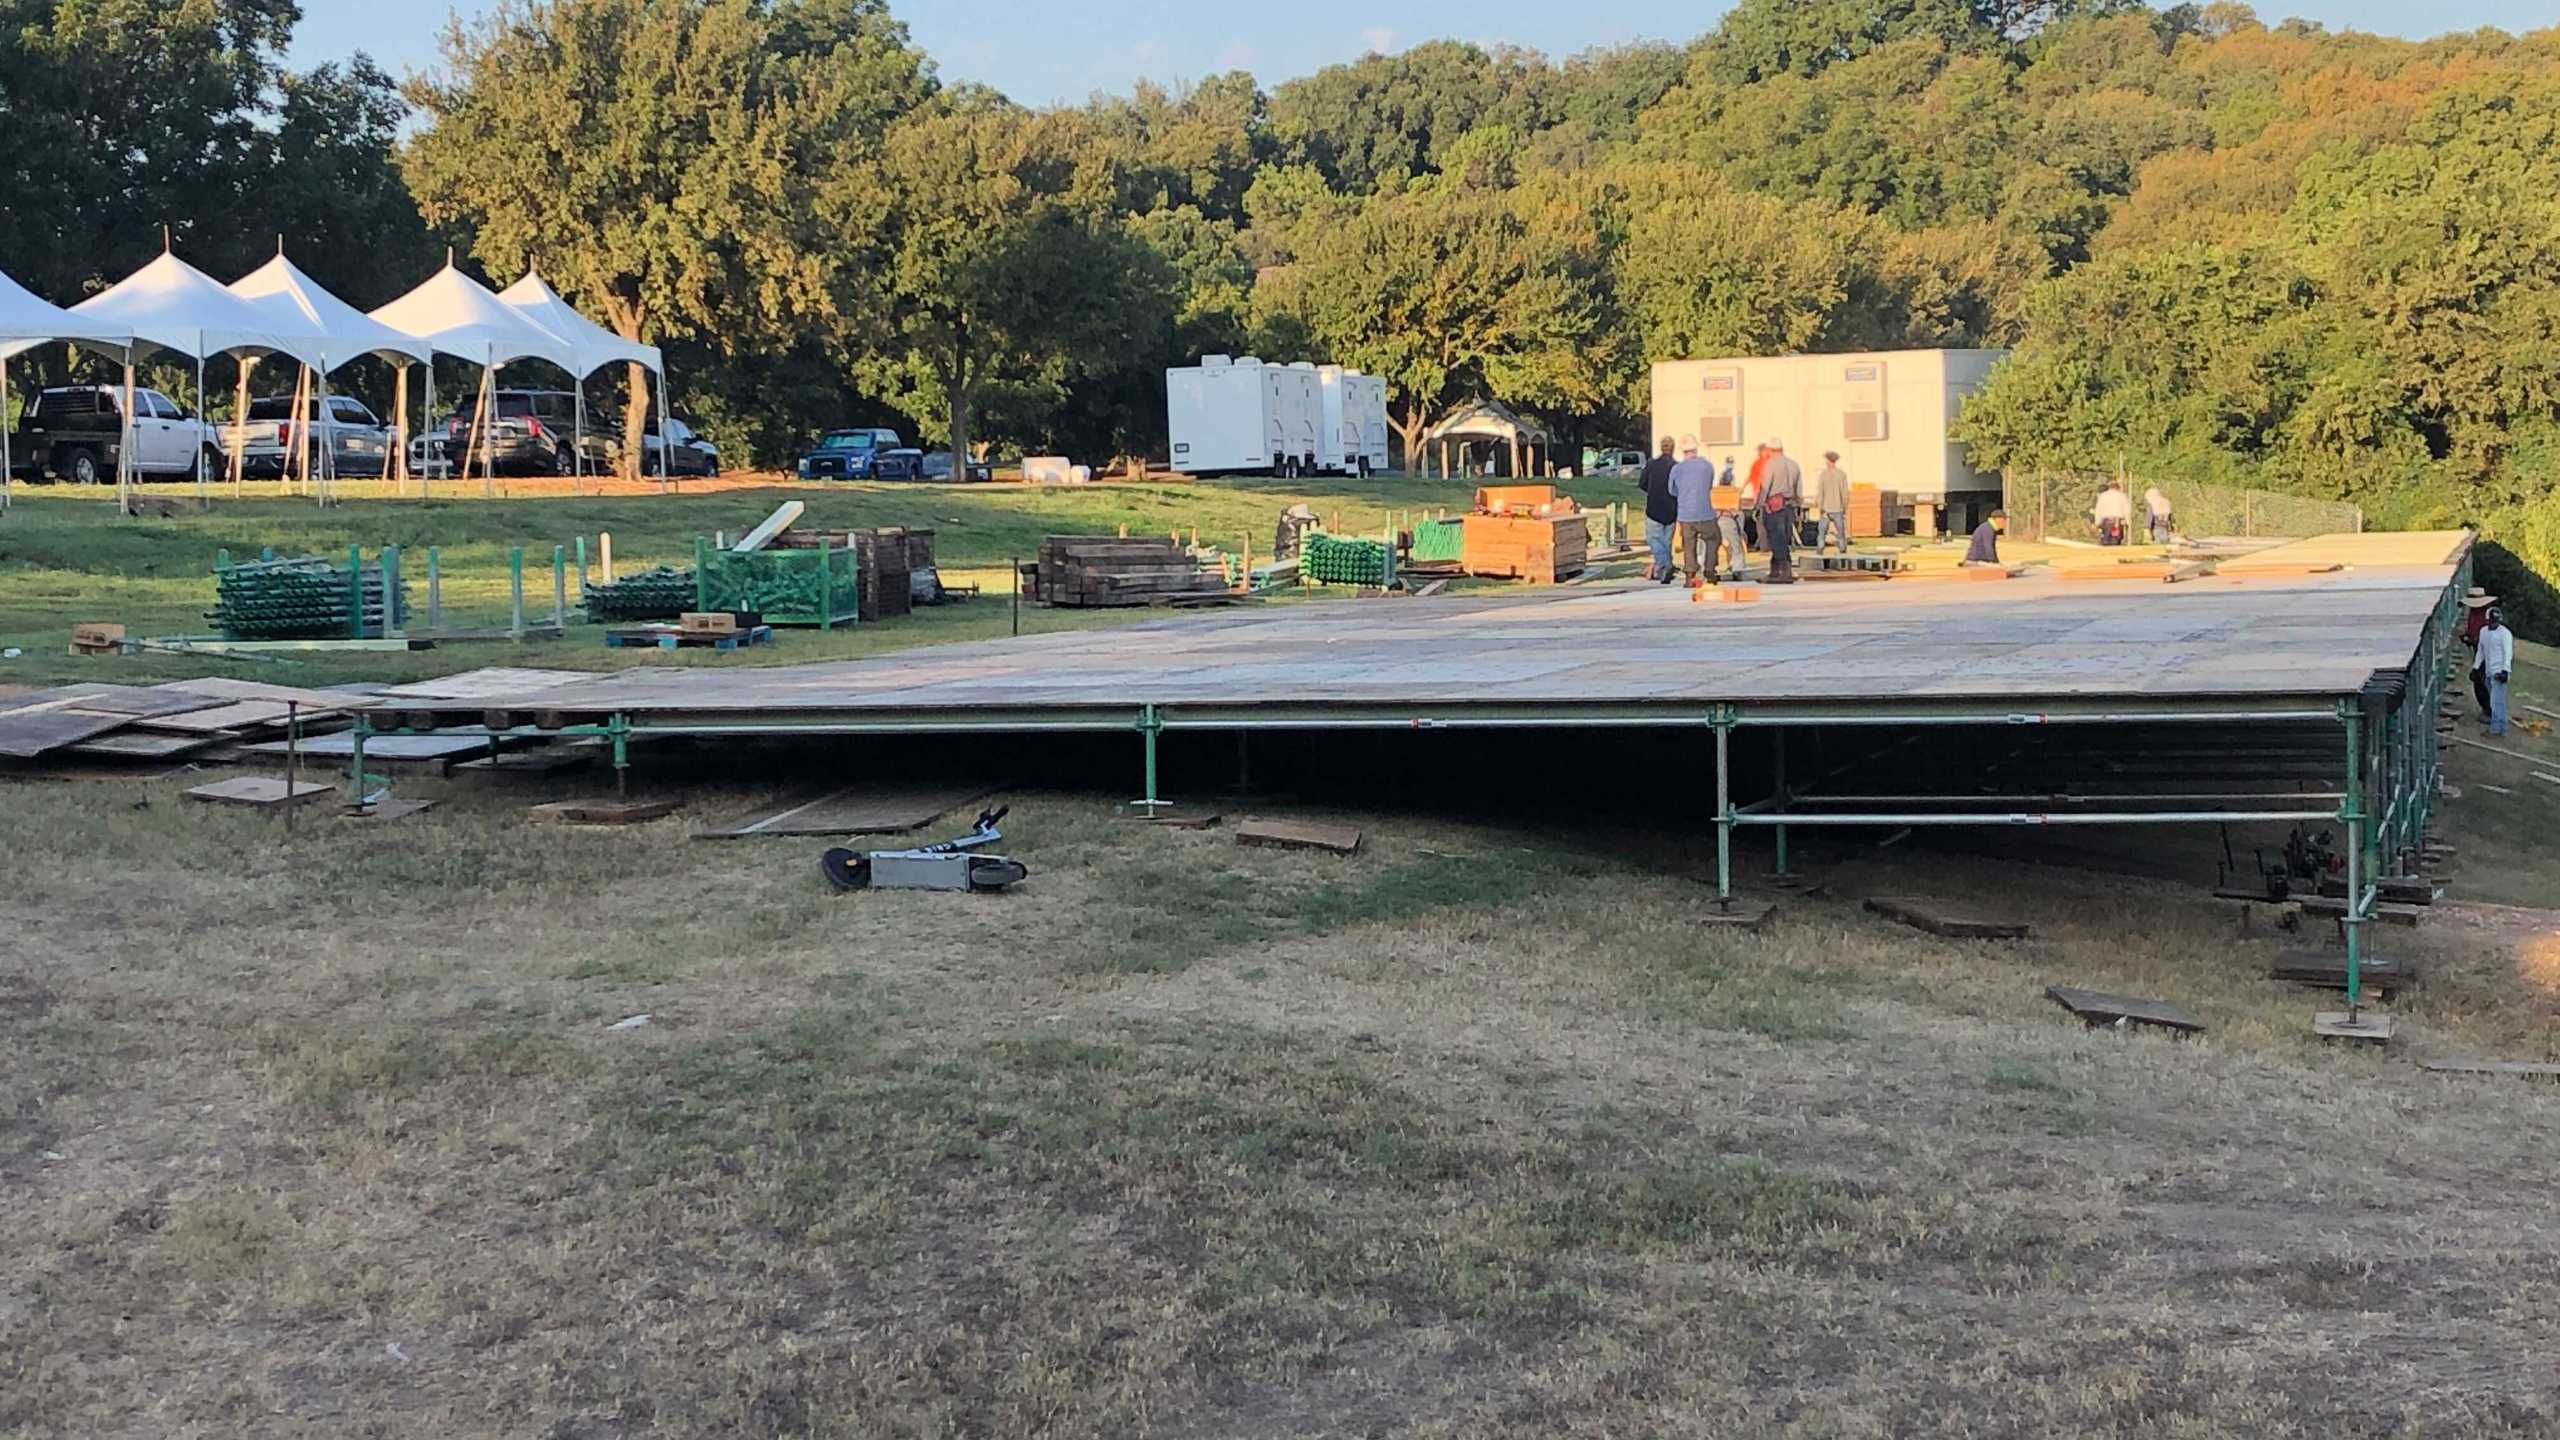 Work has begun to transform Zilker Park into the ACL Fest venue, but the city still hasn't approved the music festival's permit yet. (KXAN photo/Frank Martinez)